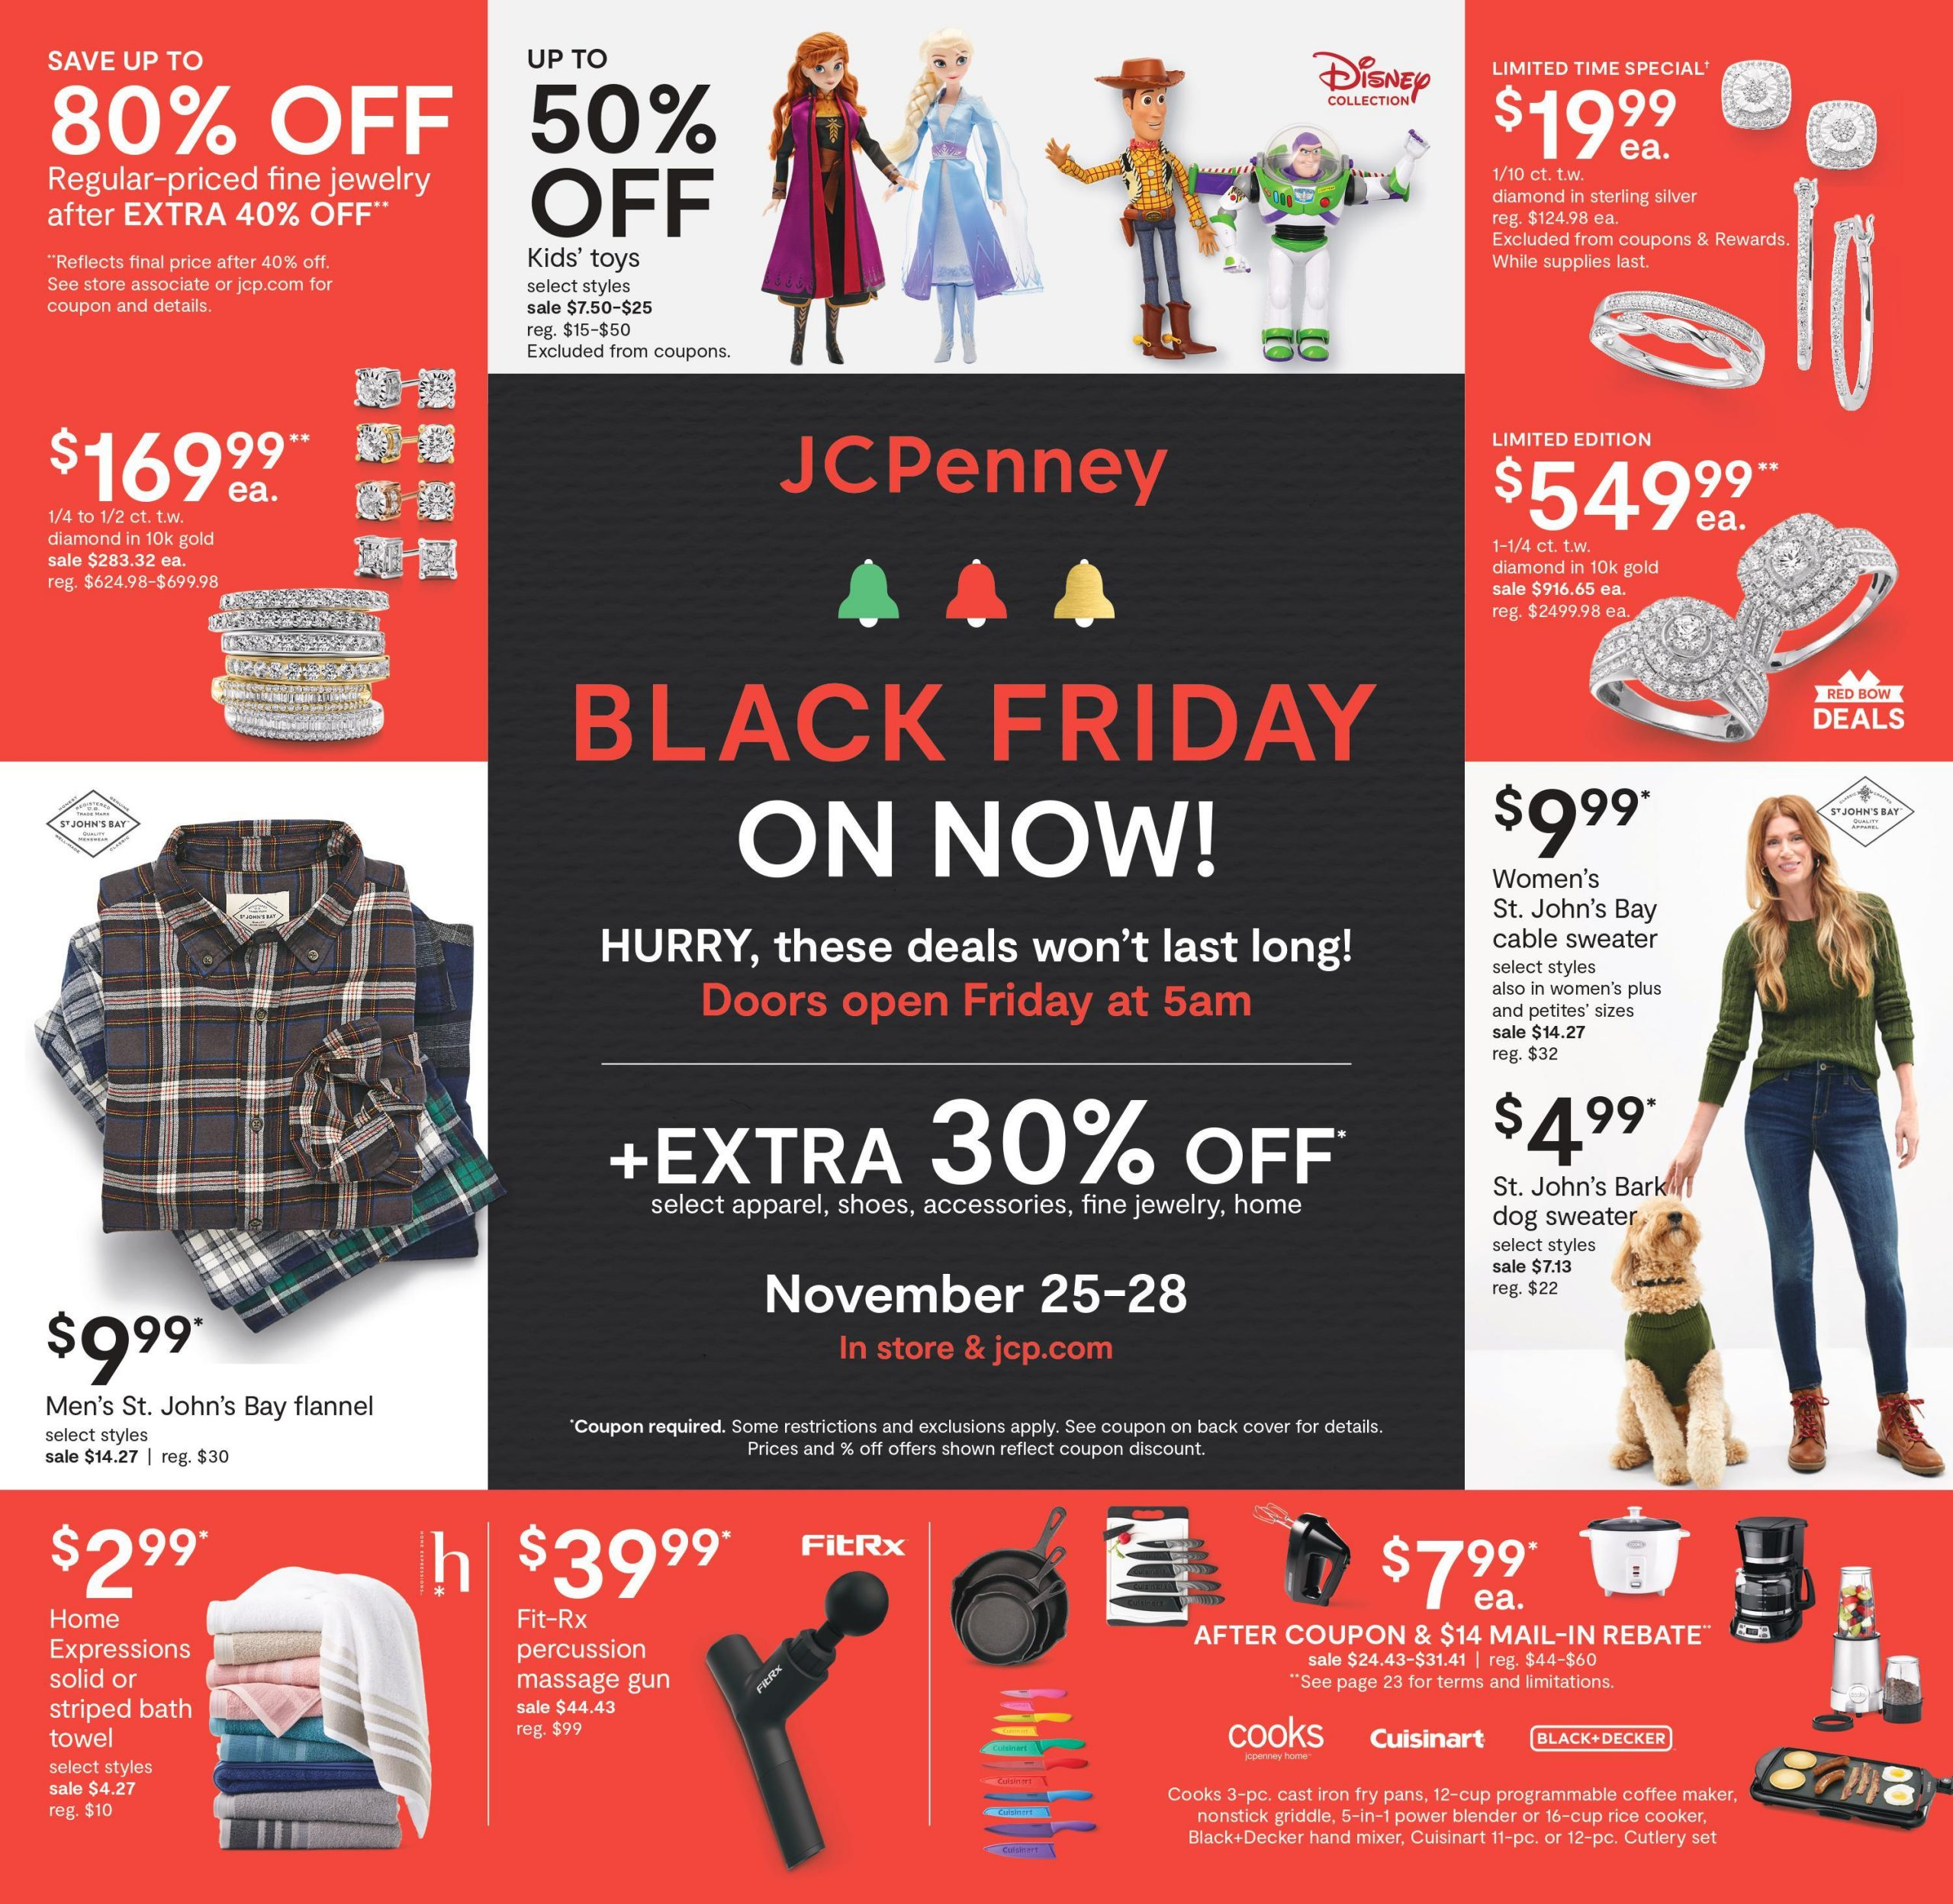 JC Penney Black Friday 2020 Ad